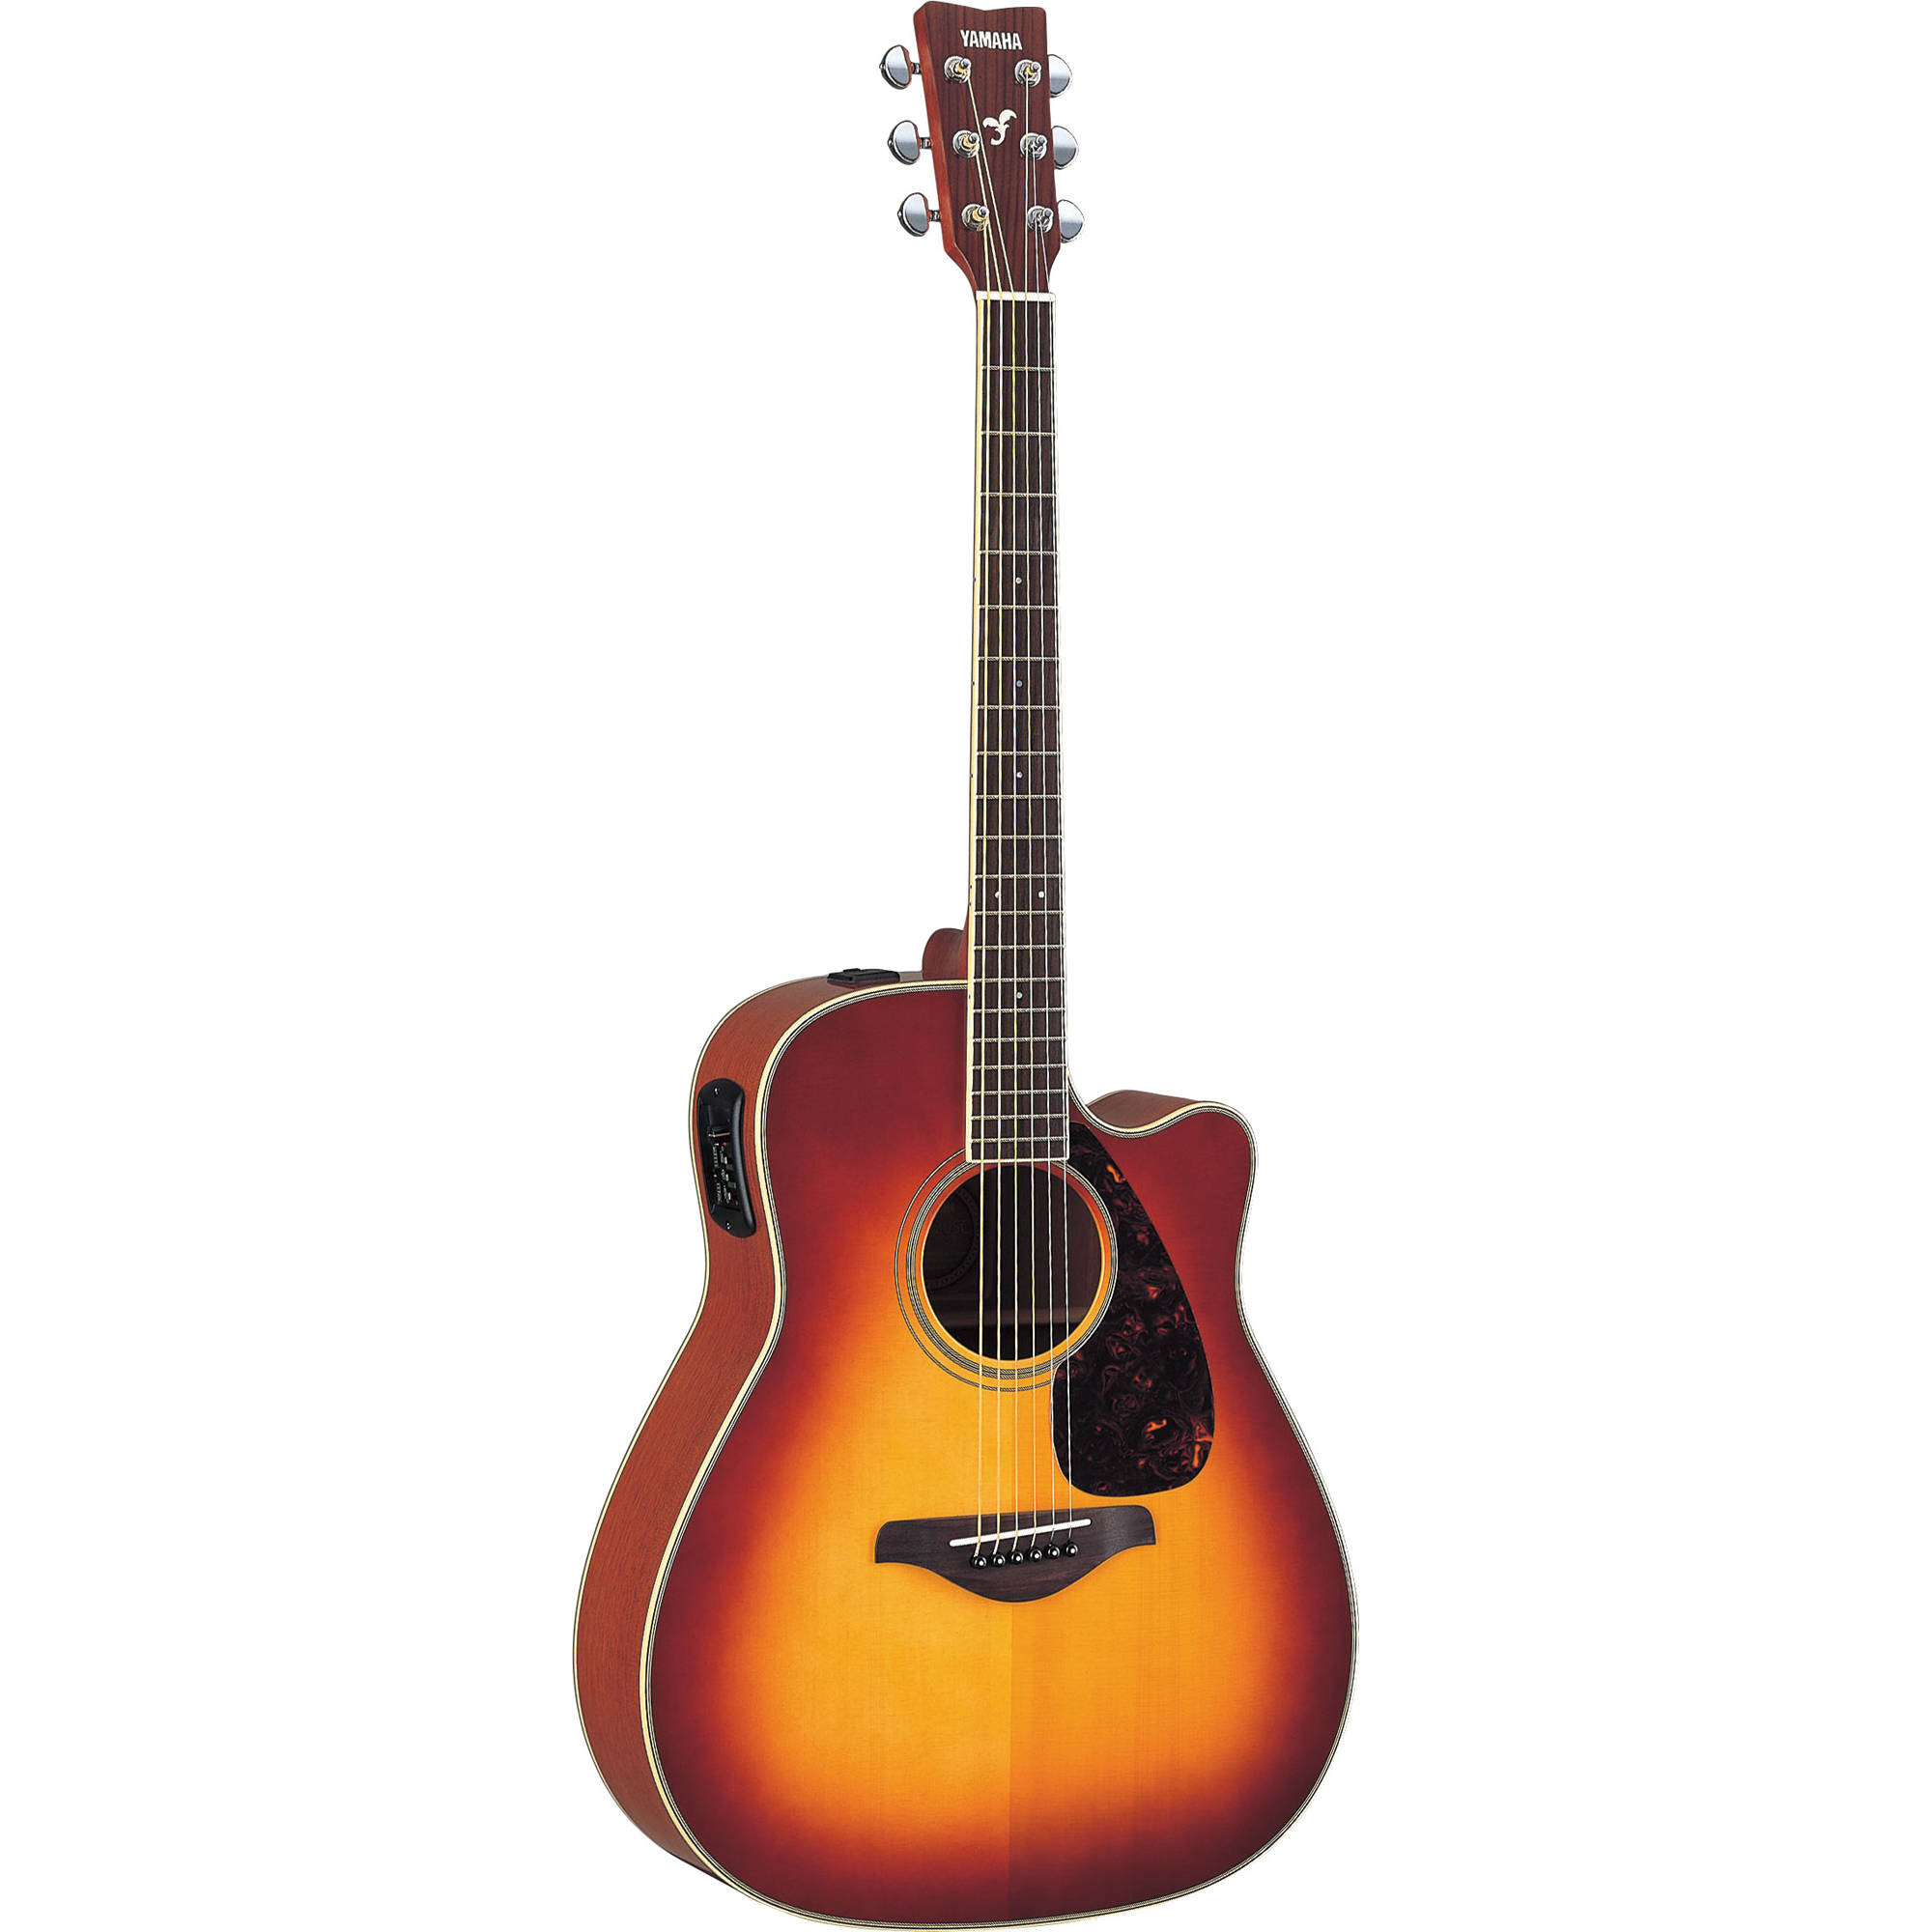 yamaha fgx720sca acoustic electric guitar fgx720sca bs b h photo. Black Bedroom Furniture Sets. Home Design Ideas